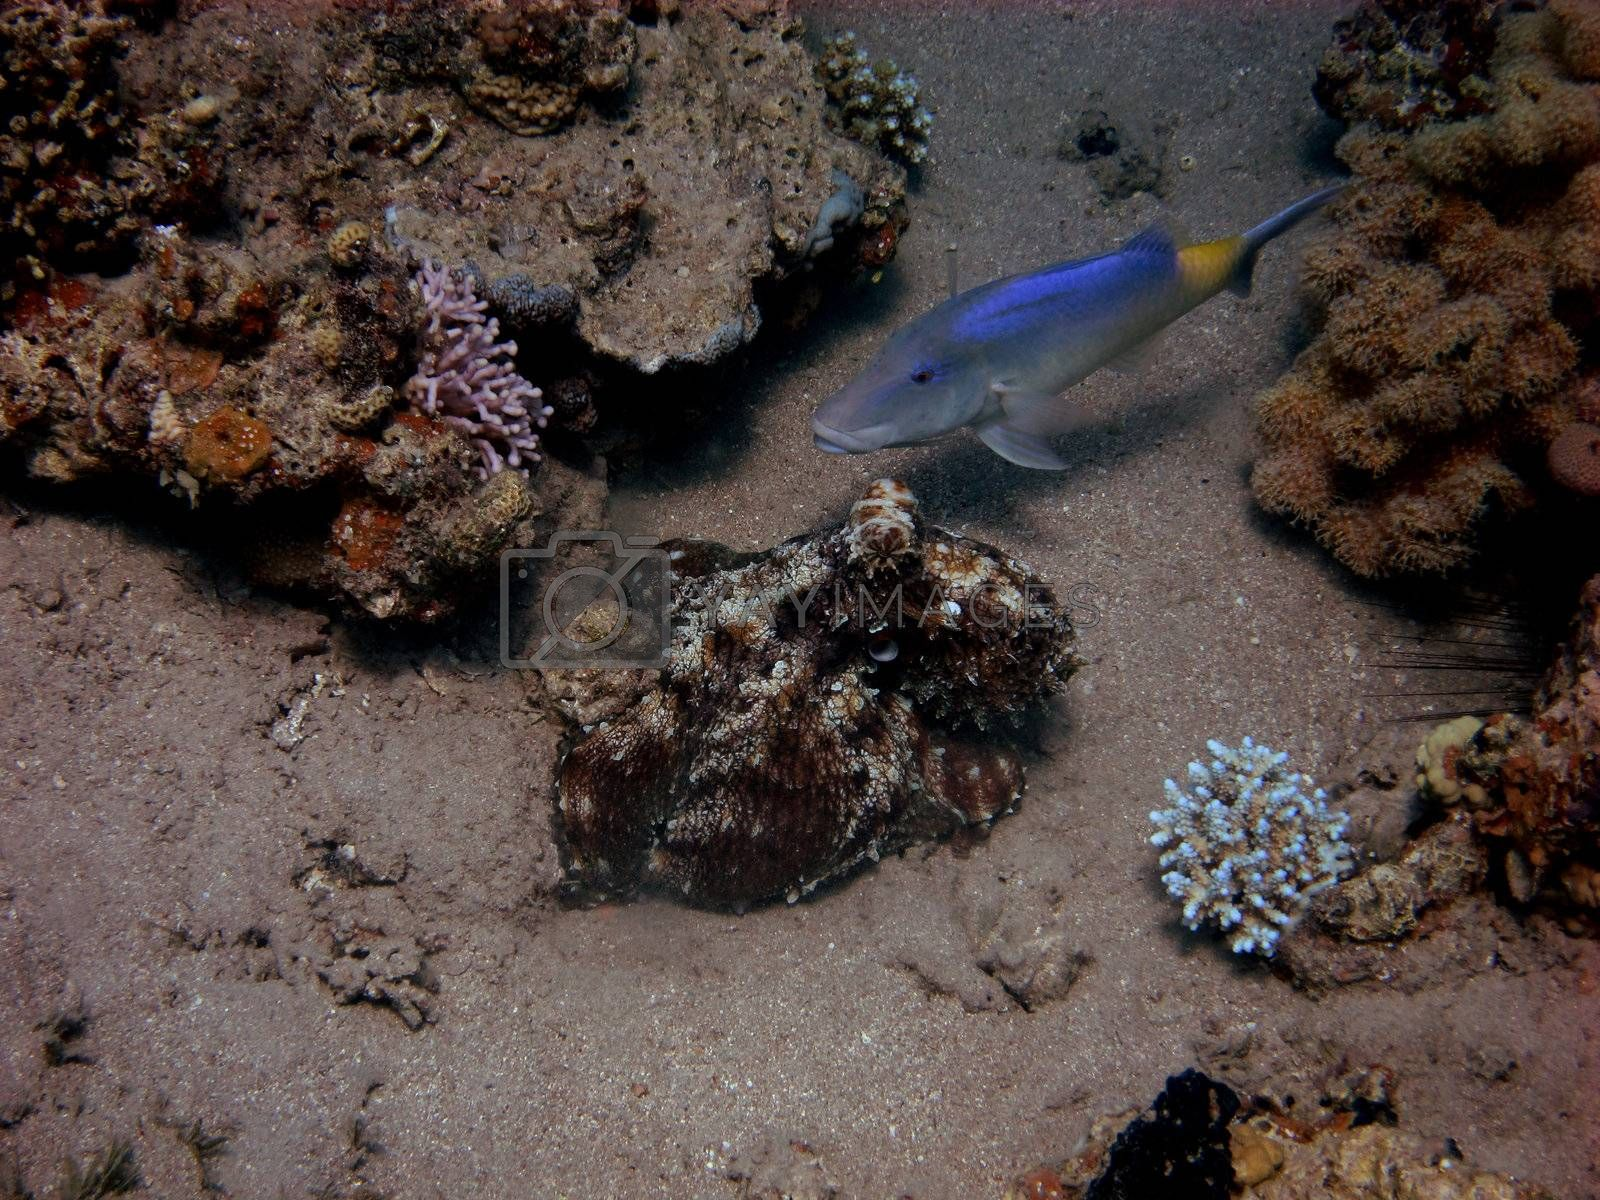 reef octopus red and blue fish on seabed